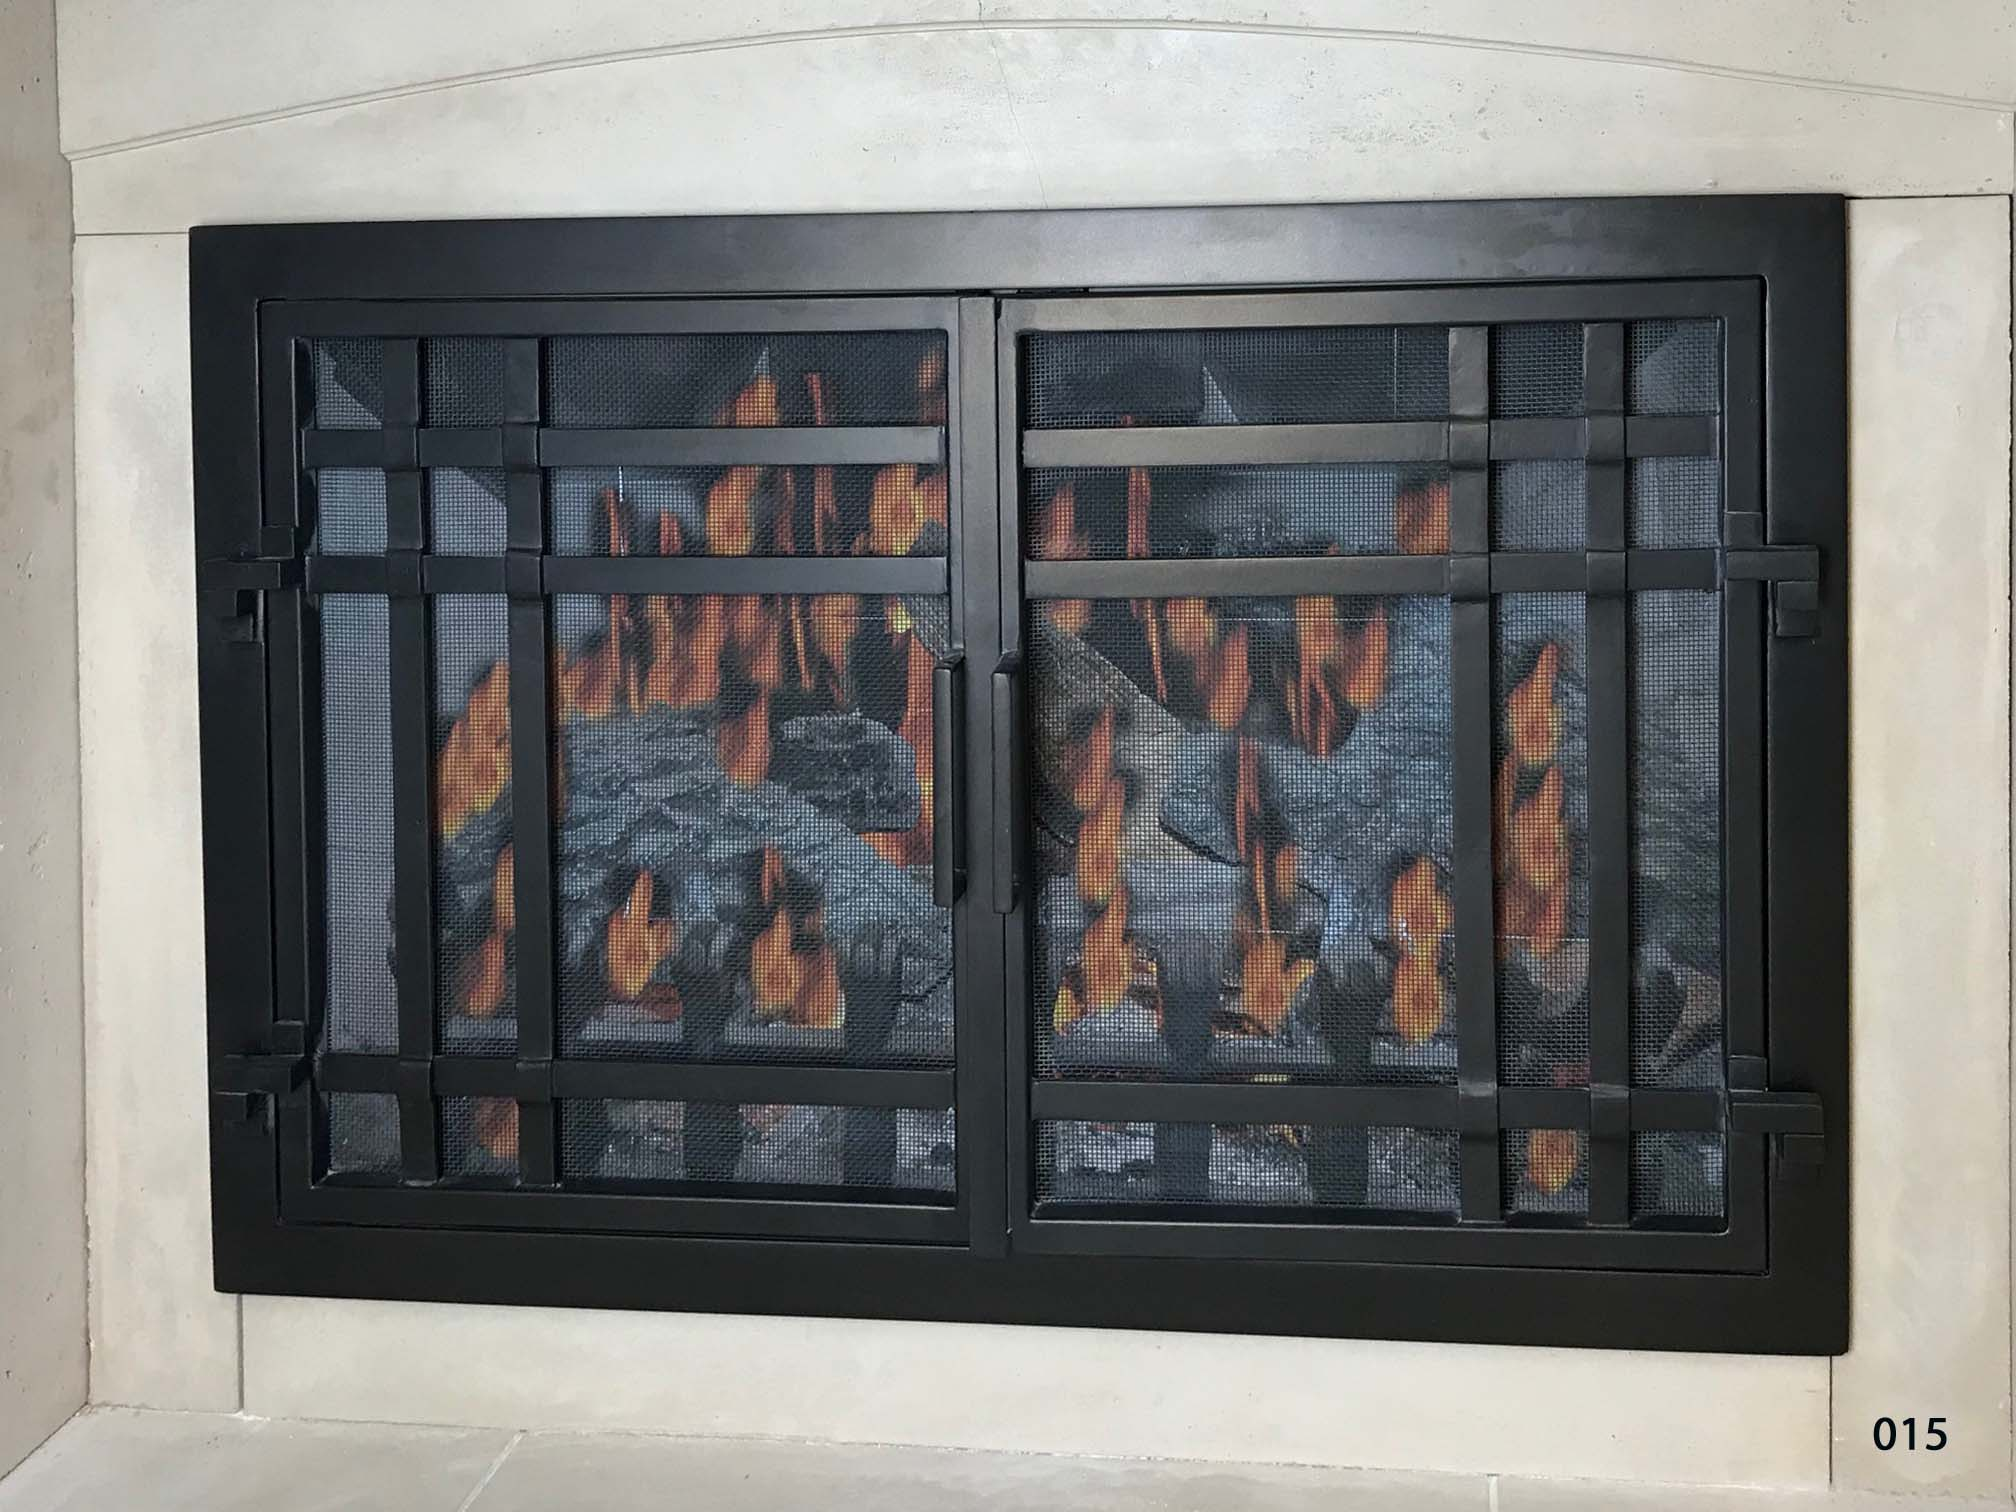 Fireplace Door 15